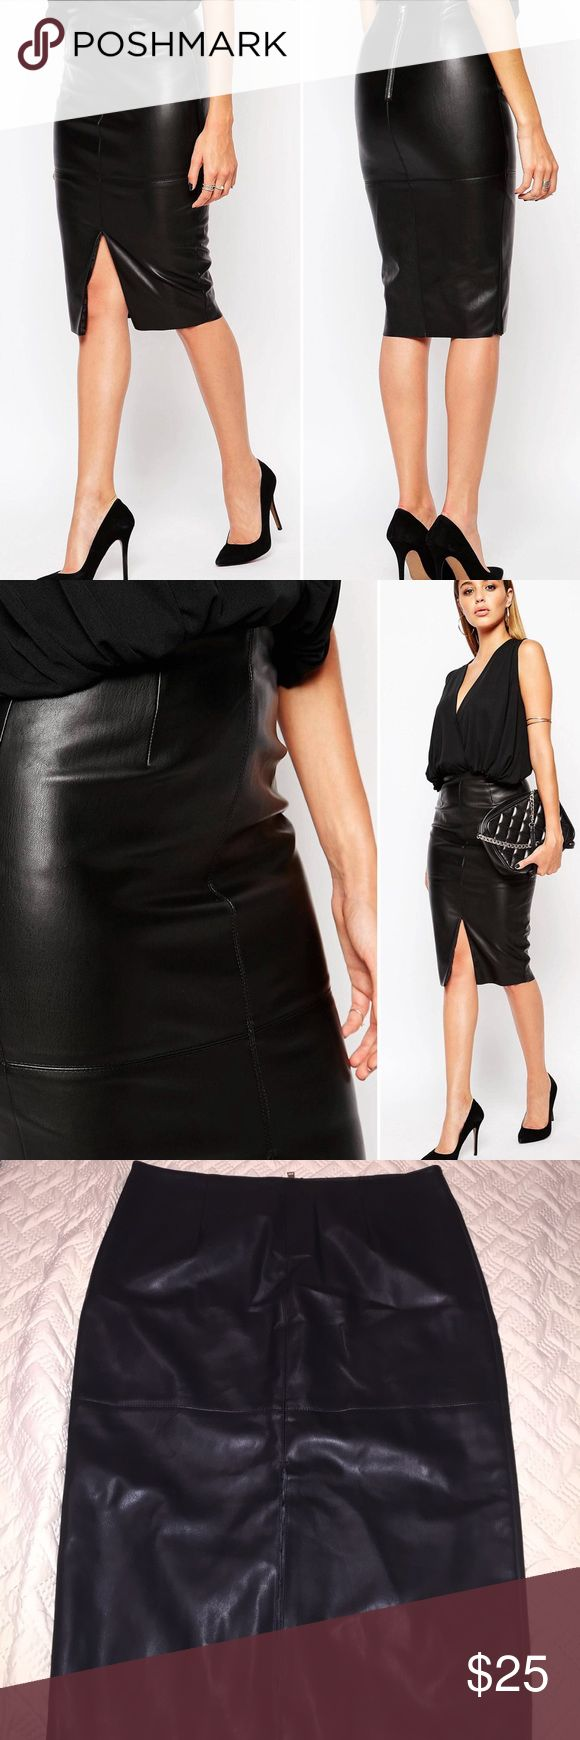 🎉ALL OFFERS CONSIDERED🎉Faux Leather Pencil Skirt This is an awesome faux leather pencil skirt with a middle slit in the front! I bought and never wore (new without tags)...this is a great skirt for date night! River Island Skirts Midi